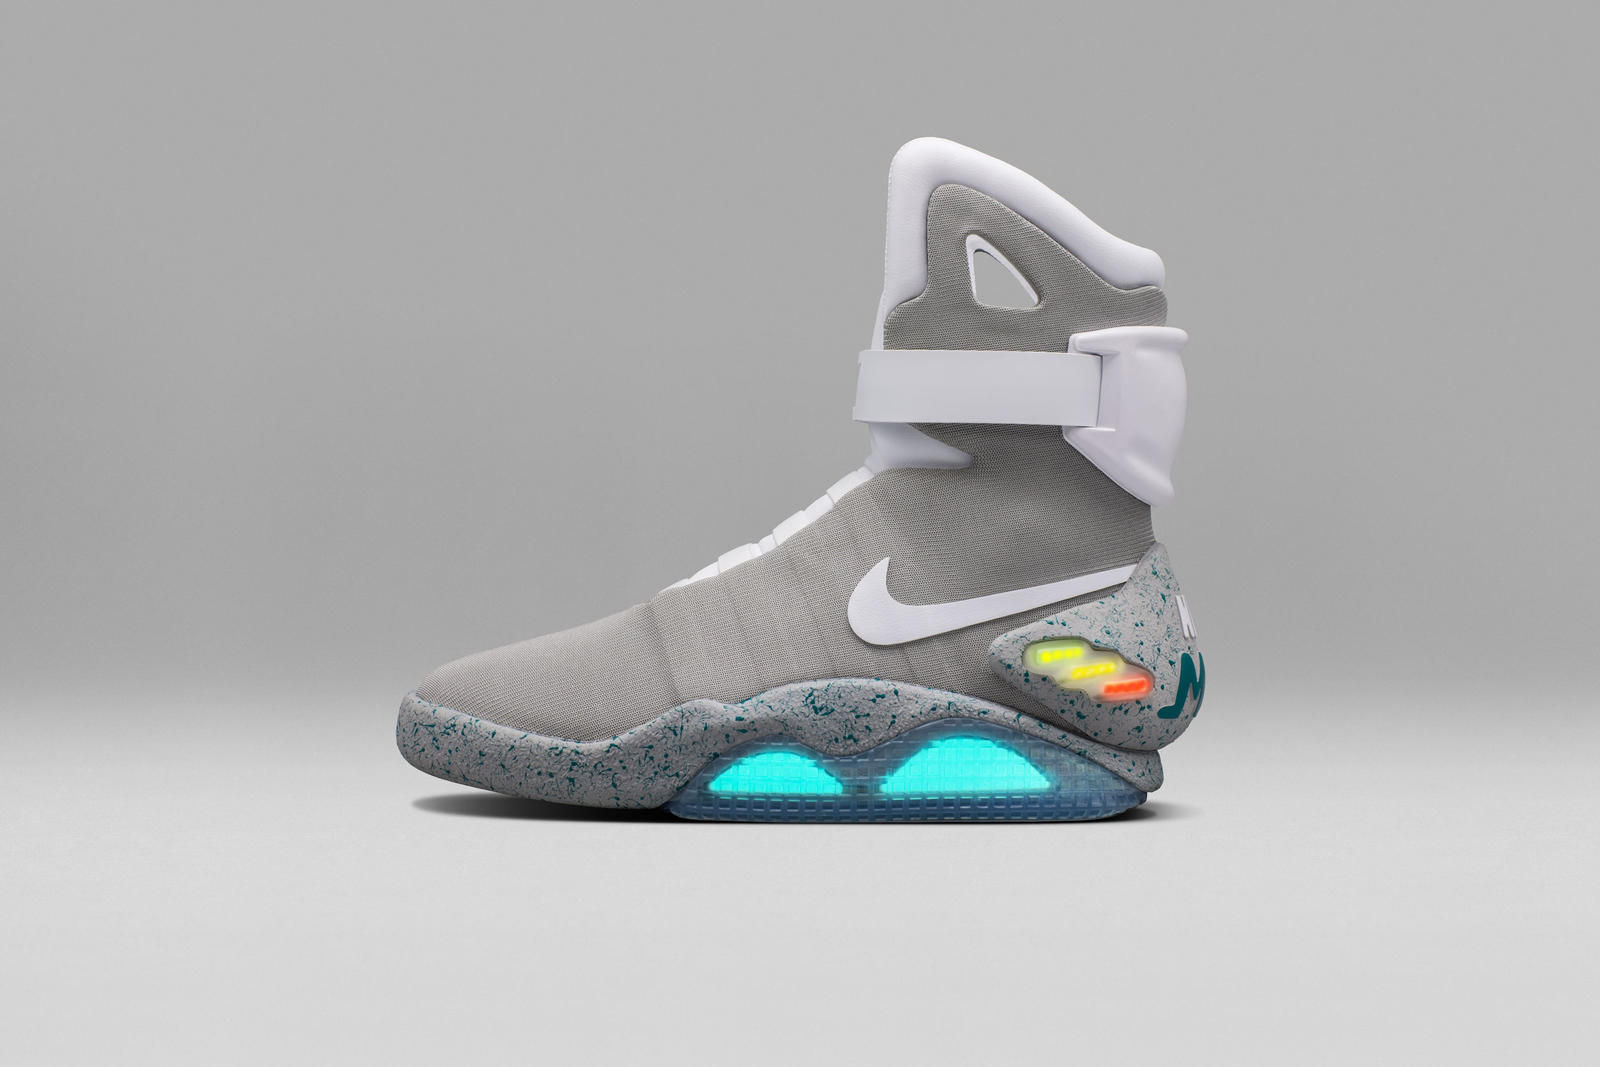 How to Get the 2016 Nike Mag - Nike News